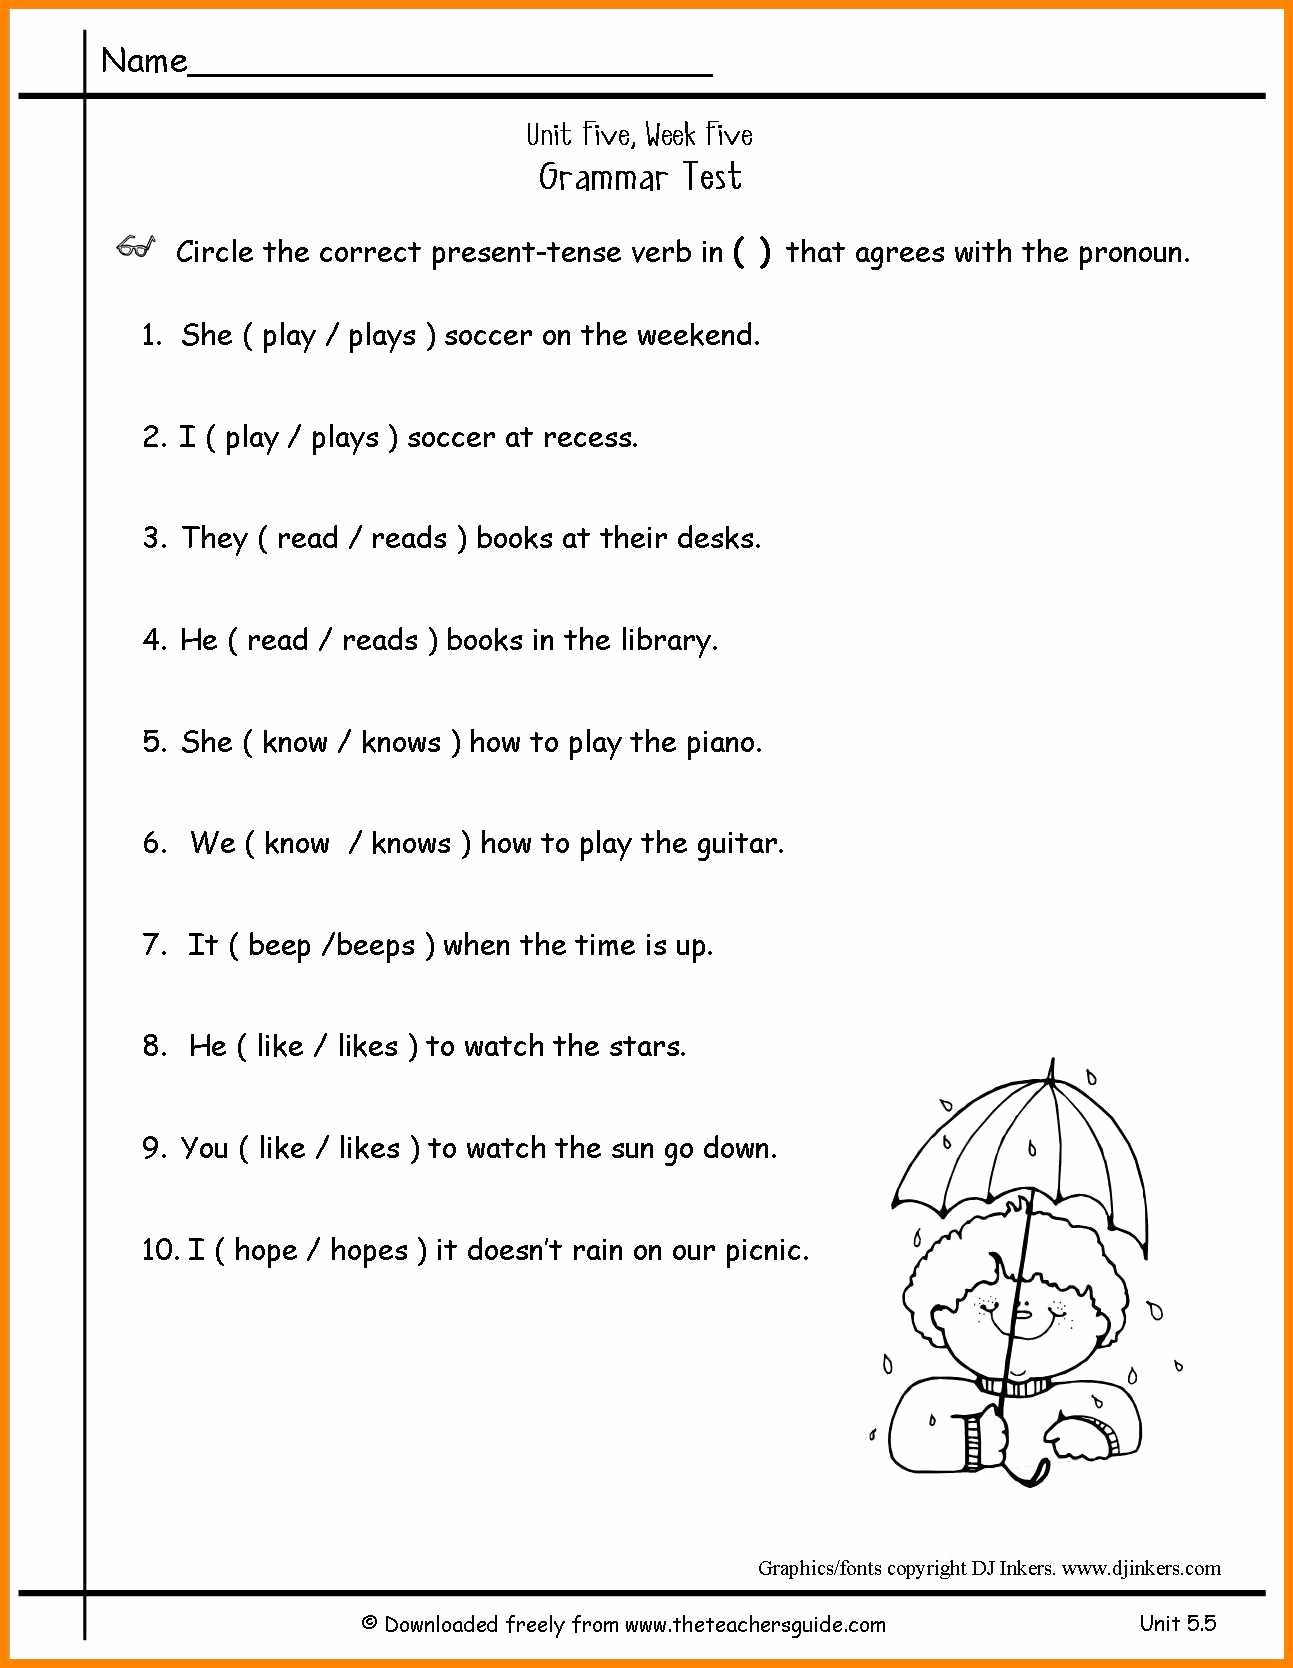 Pronoun Worksheet for 2nd Grade New Free Pronoun Worksheet for 2nd Grade